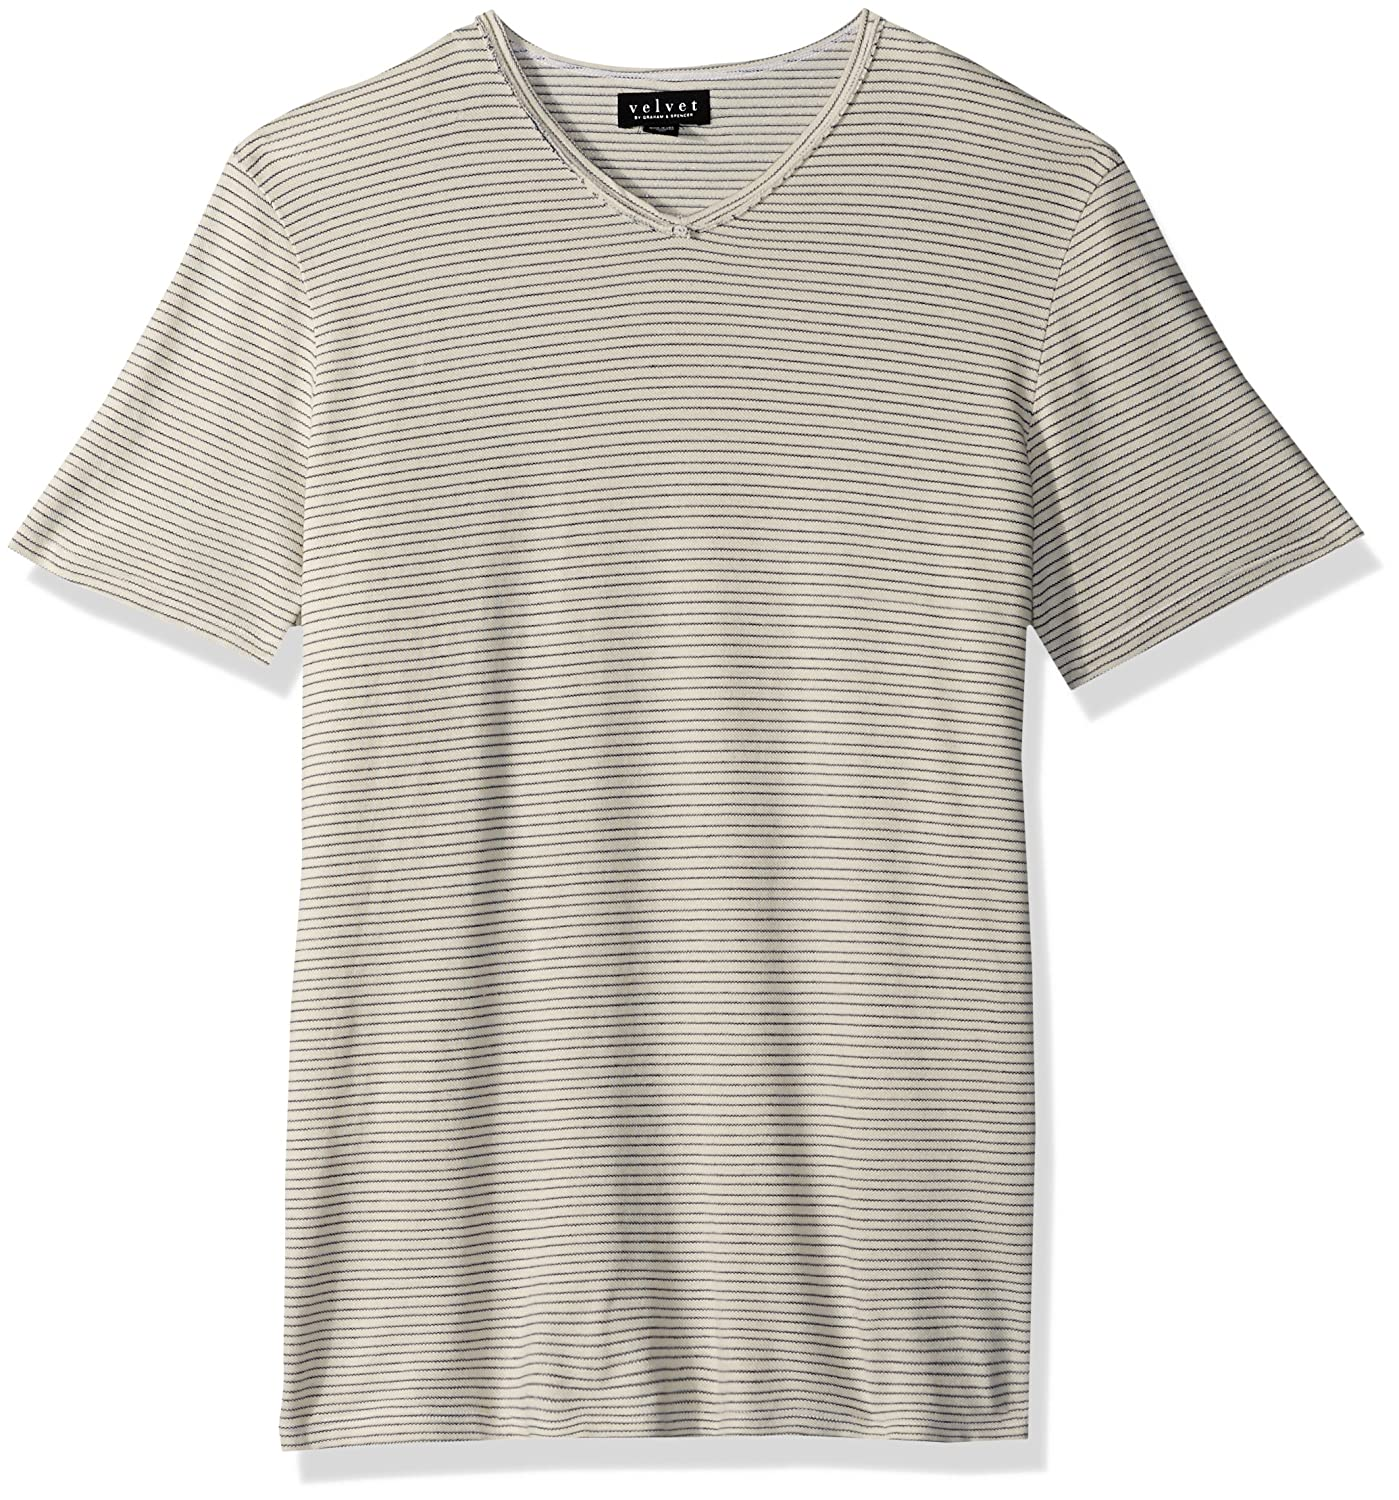 Velvet by Graham /& Spencer Velvets Men V-Neck Short Sleeve Shirt in Stripe Pique